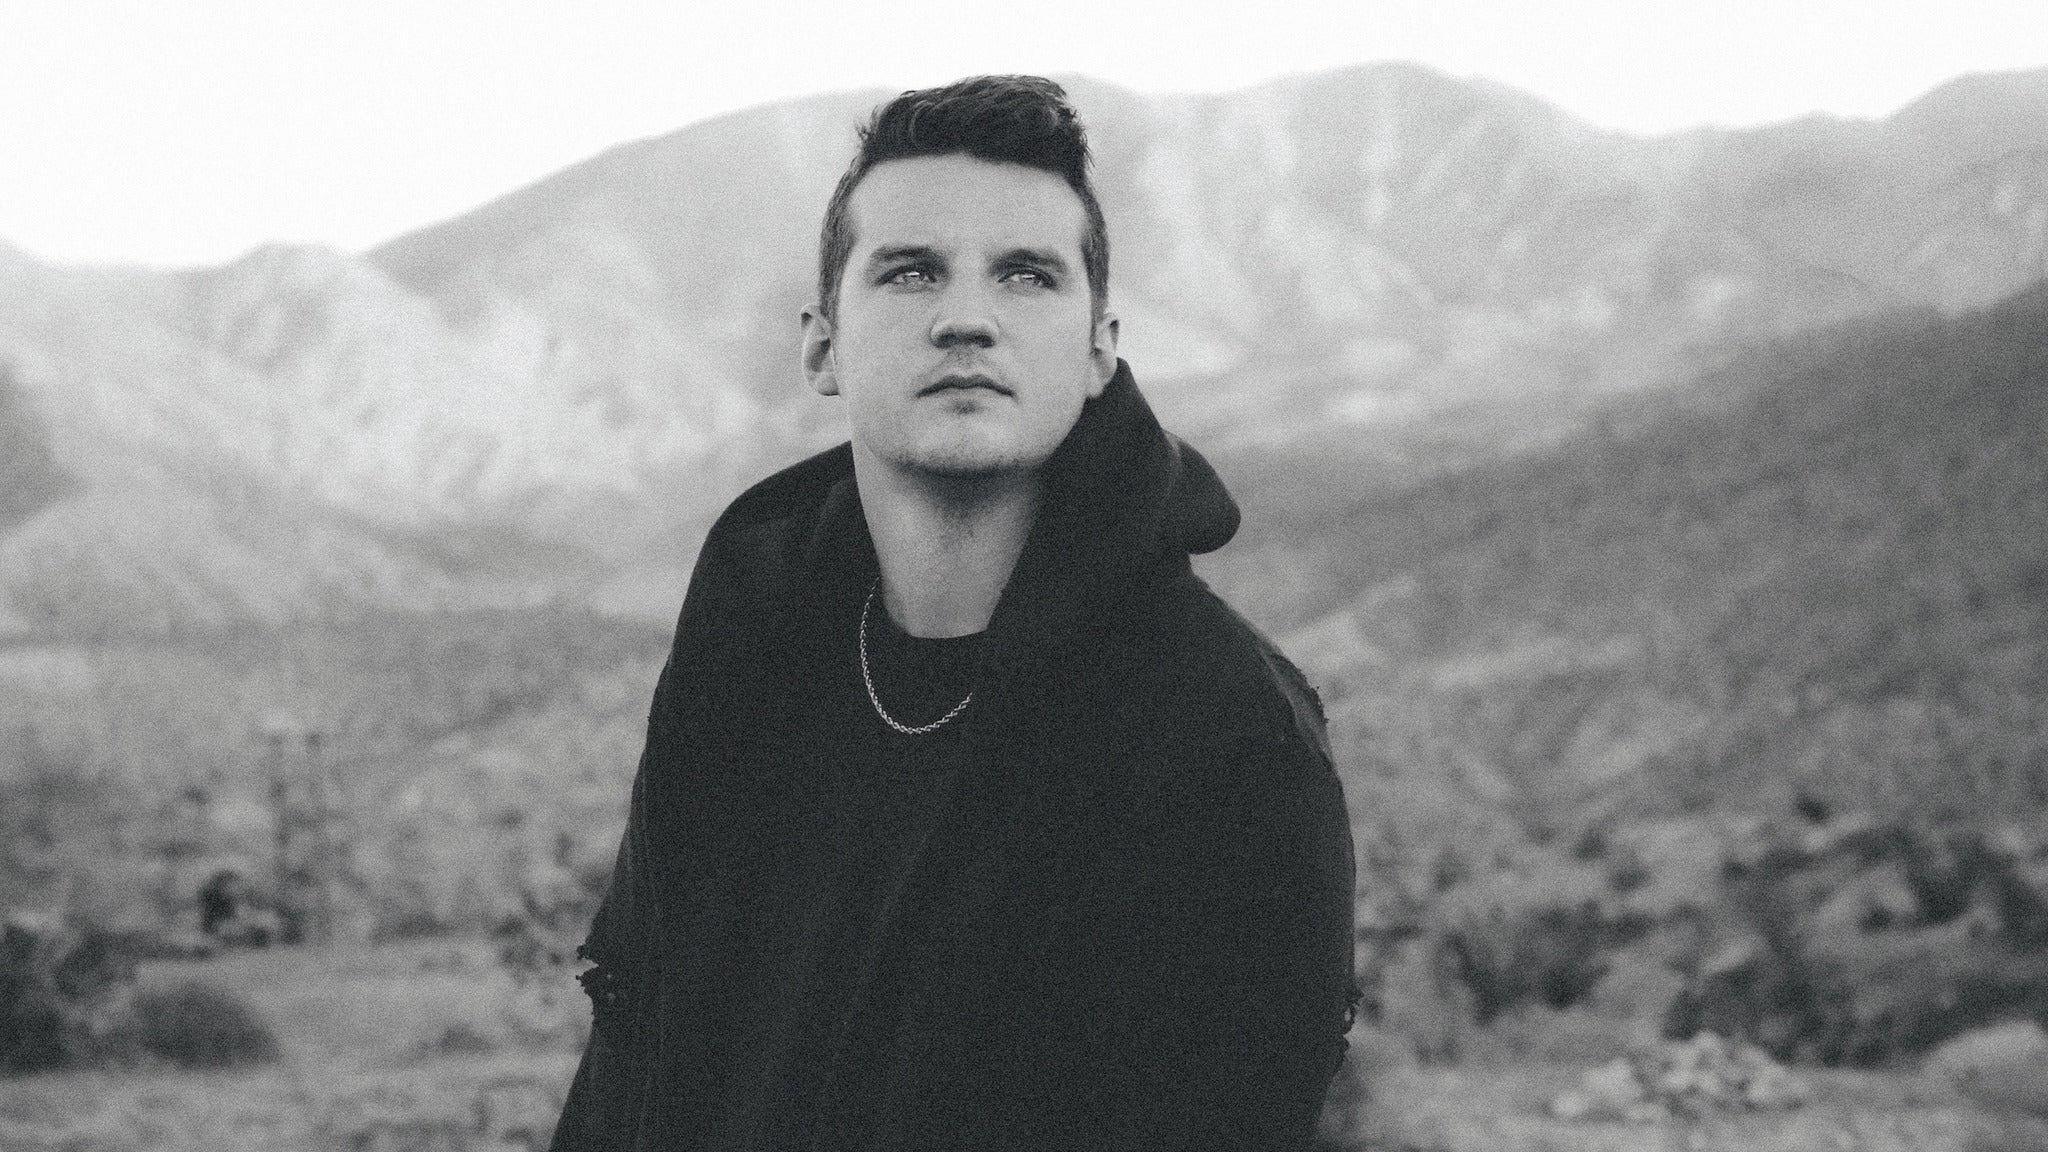 Witt Lowry at The Echo - Los Angeles, CA 90026